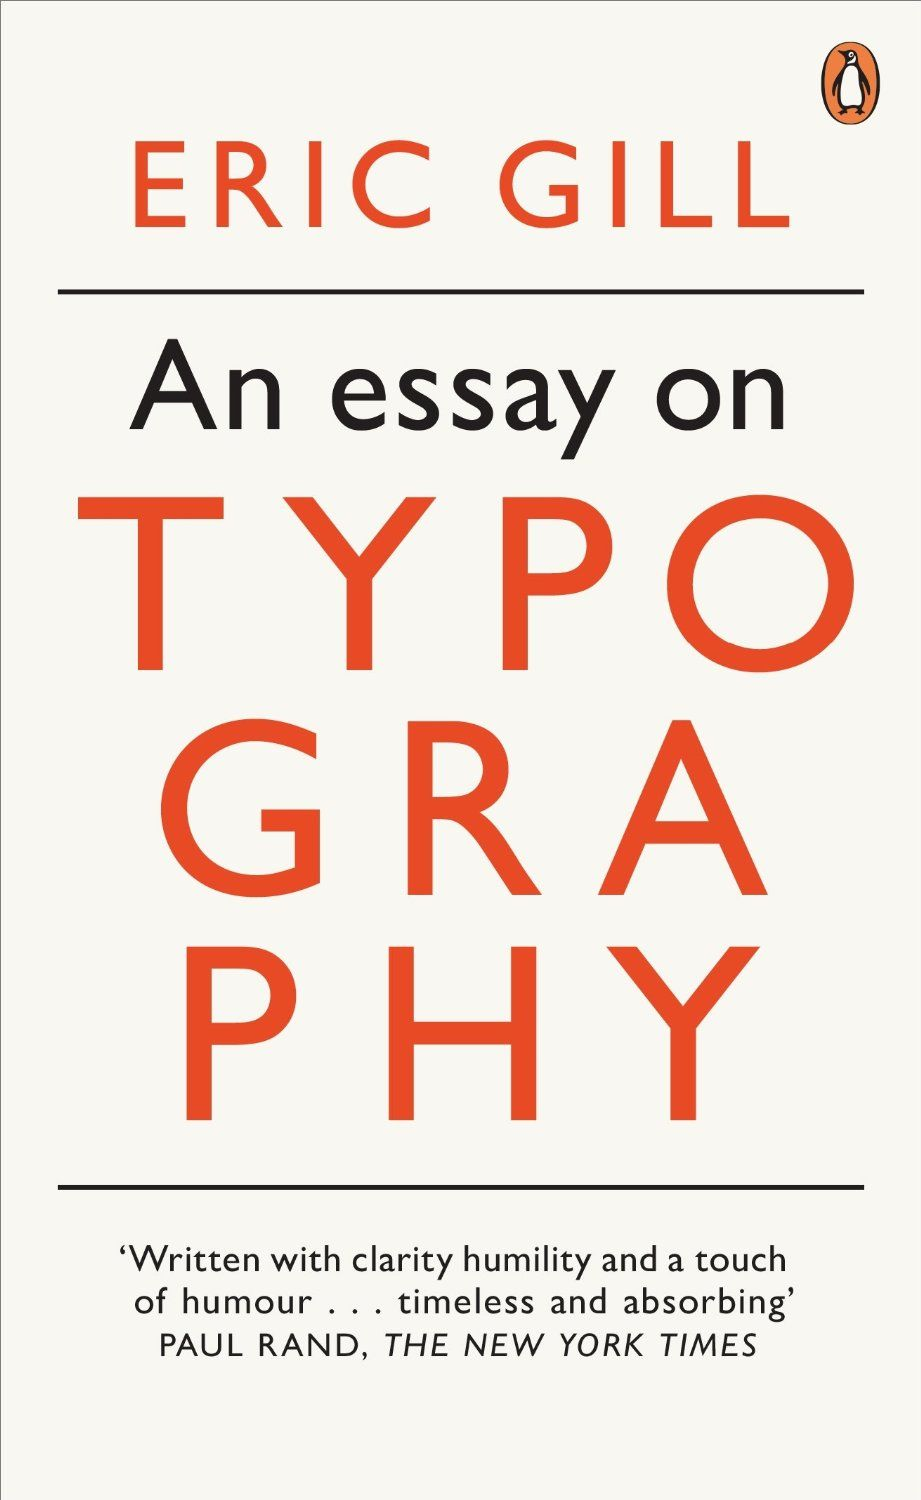 an essay on typography eric gill penguin on design graphic  an essay on typography eric gill penguin on design